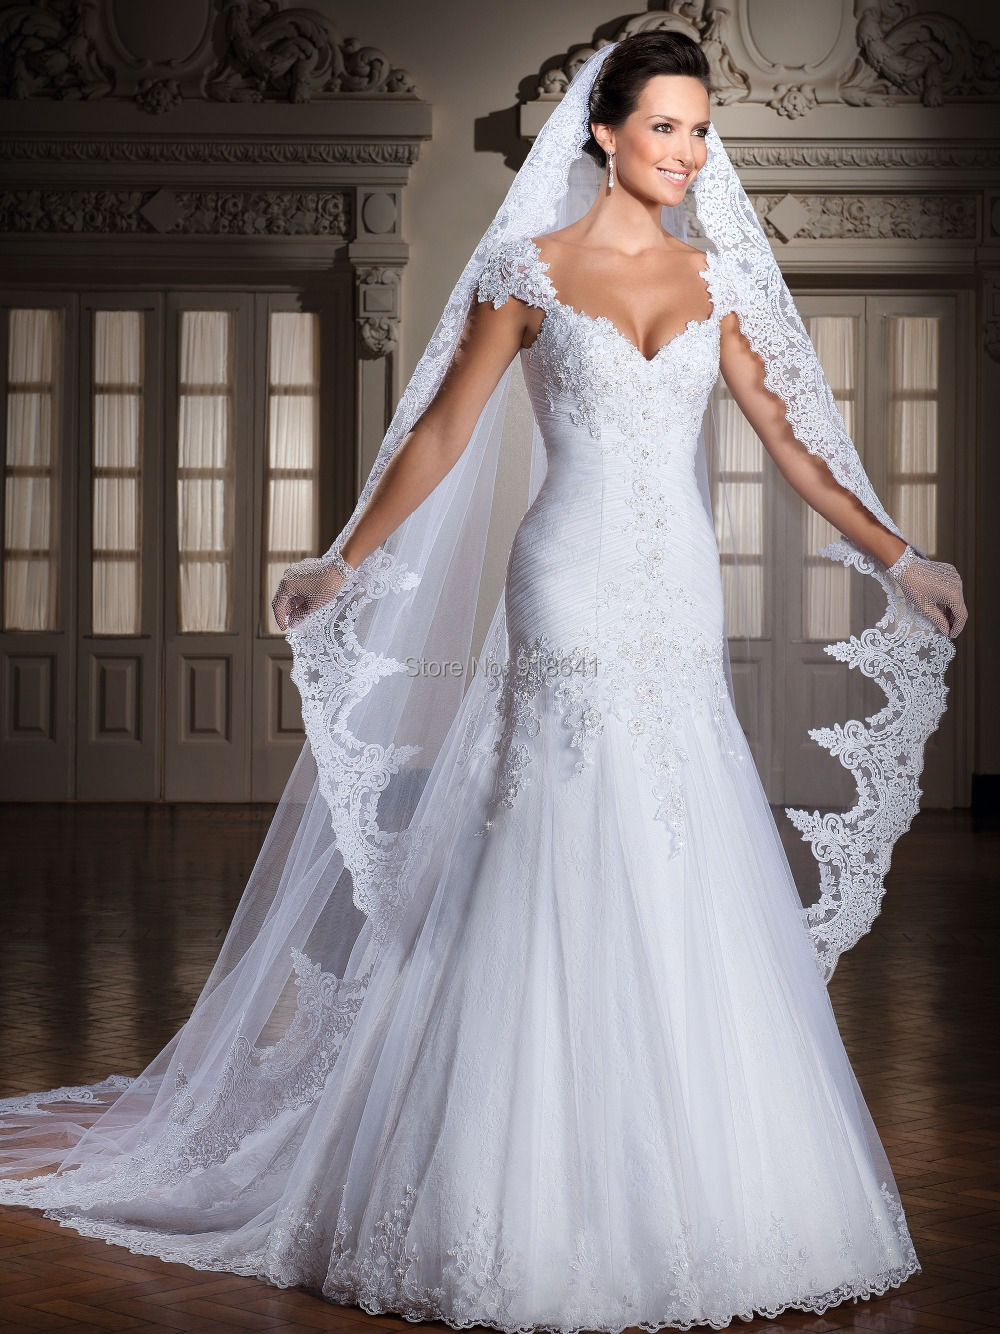 cap sleeves illusion high neck ball gown wedding dress wedding dress cap sleeves ball gown sheer wedding dress cap sleeves high neck ball gown sheer wedding dress